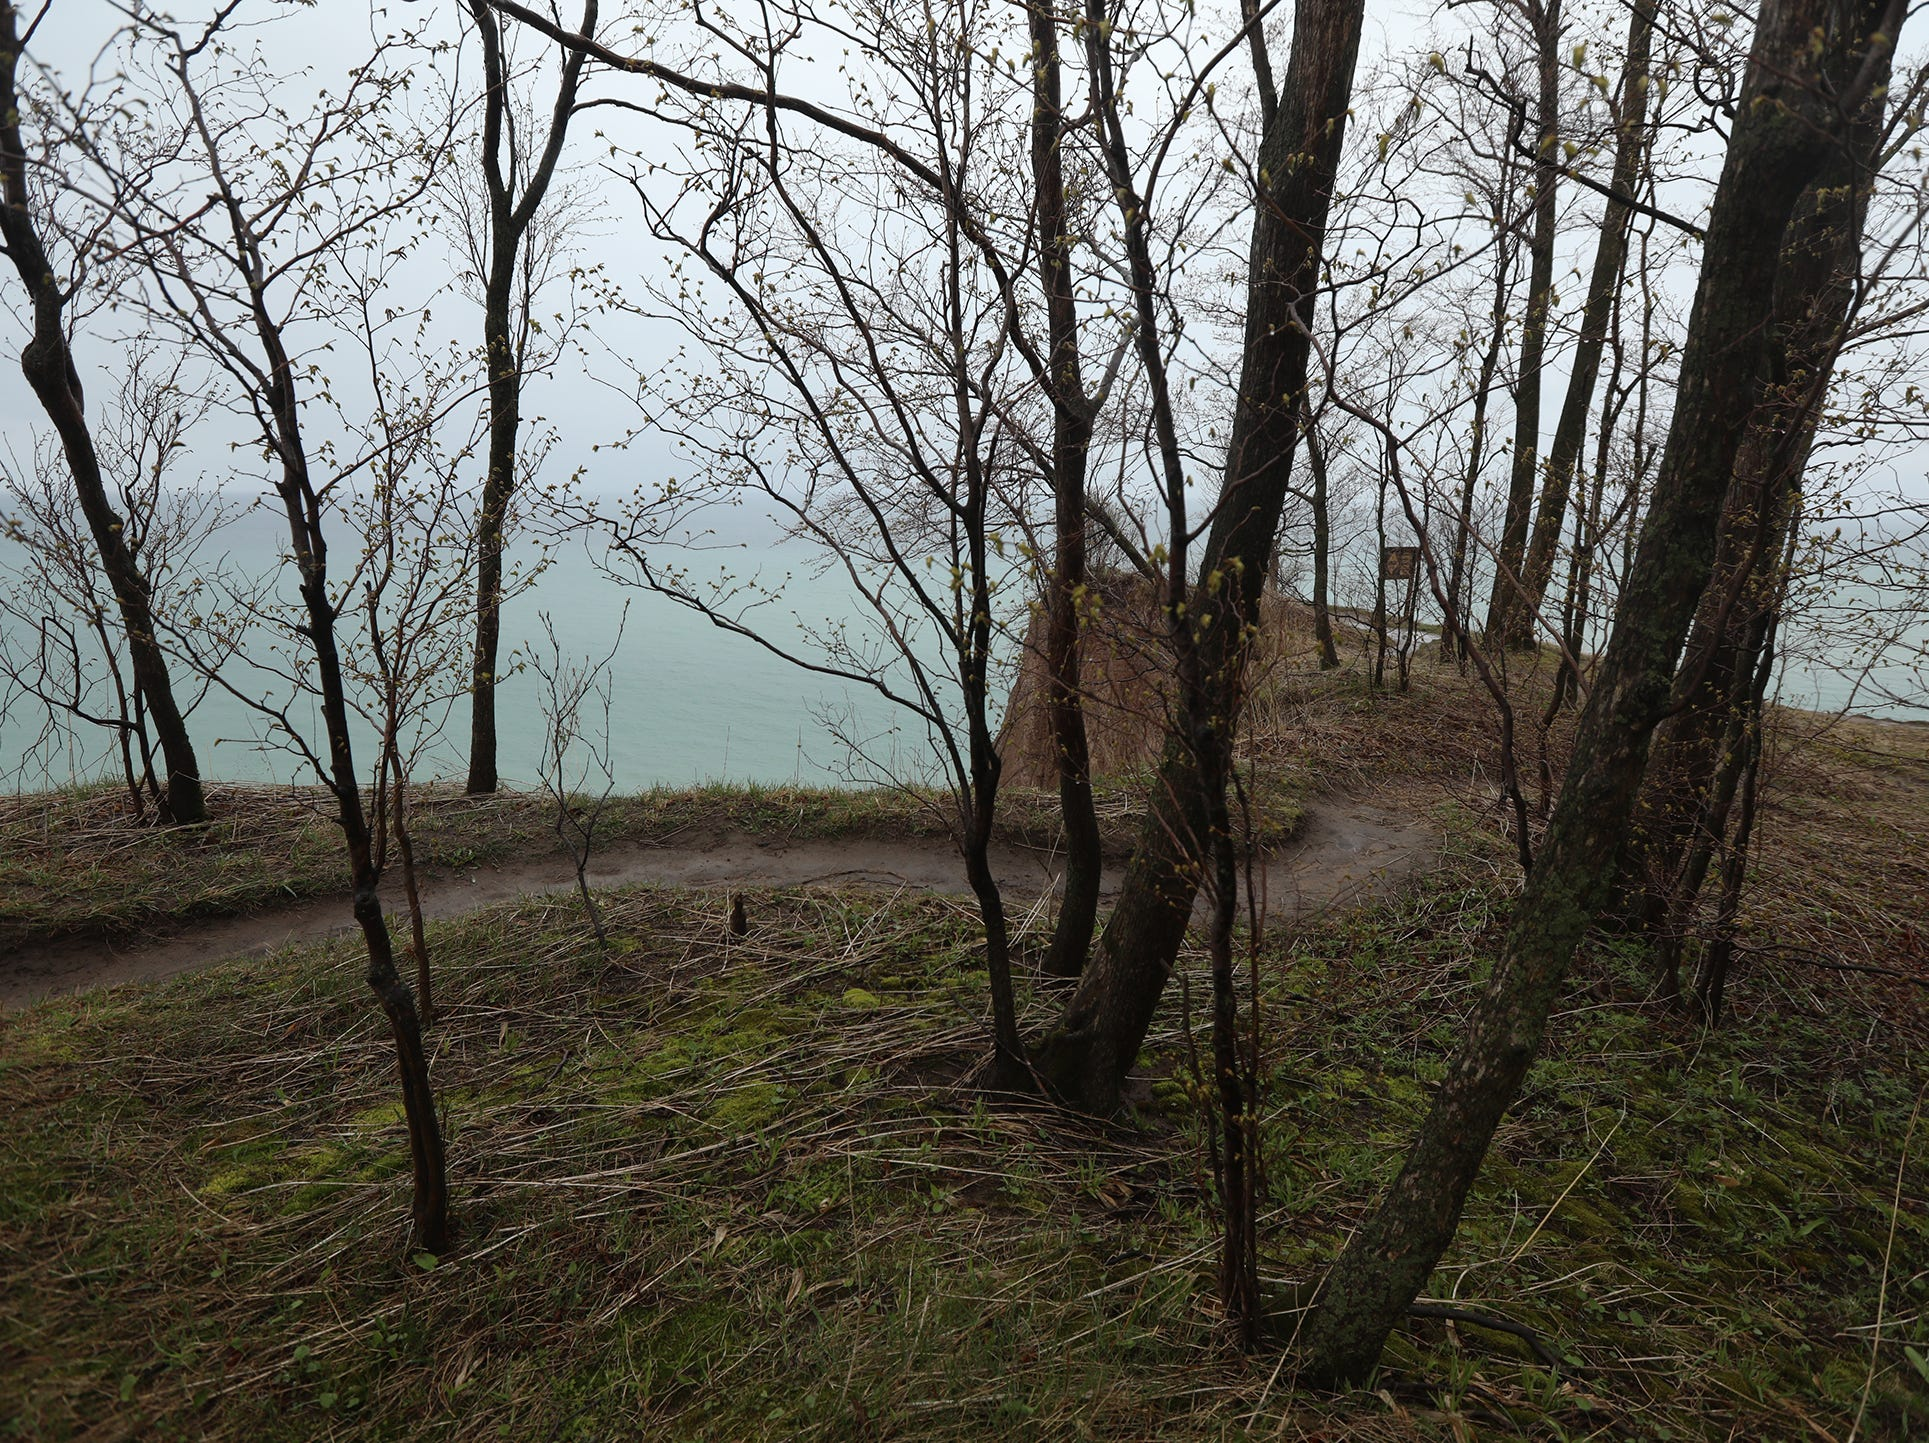 Erosion leaves a jagged coastline view of Chimney Bluffs State Park.